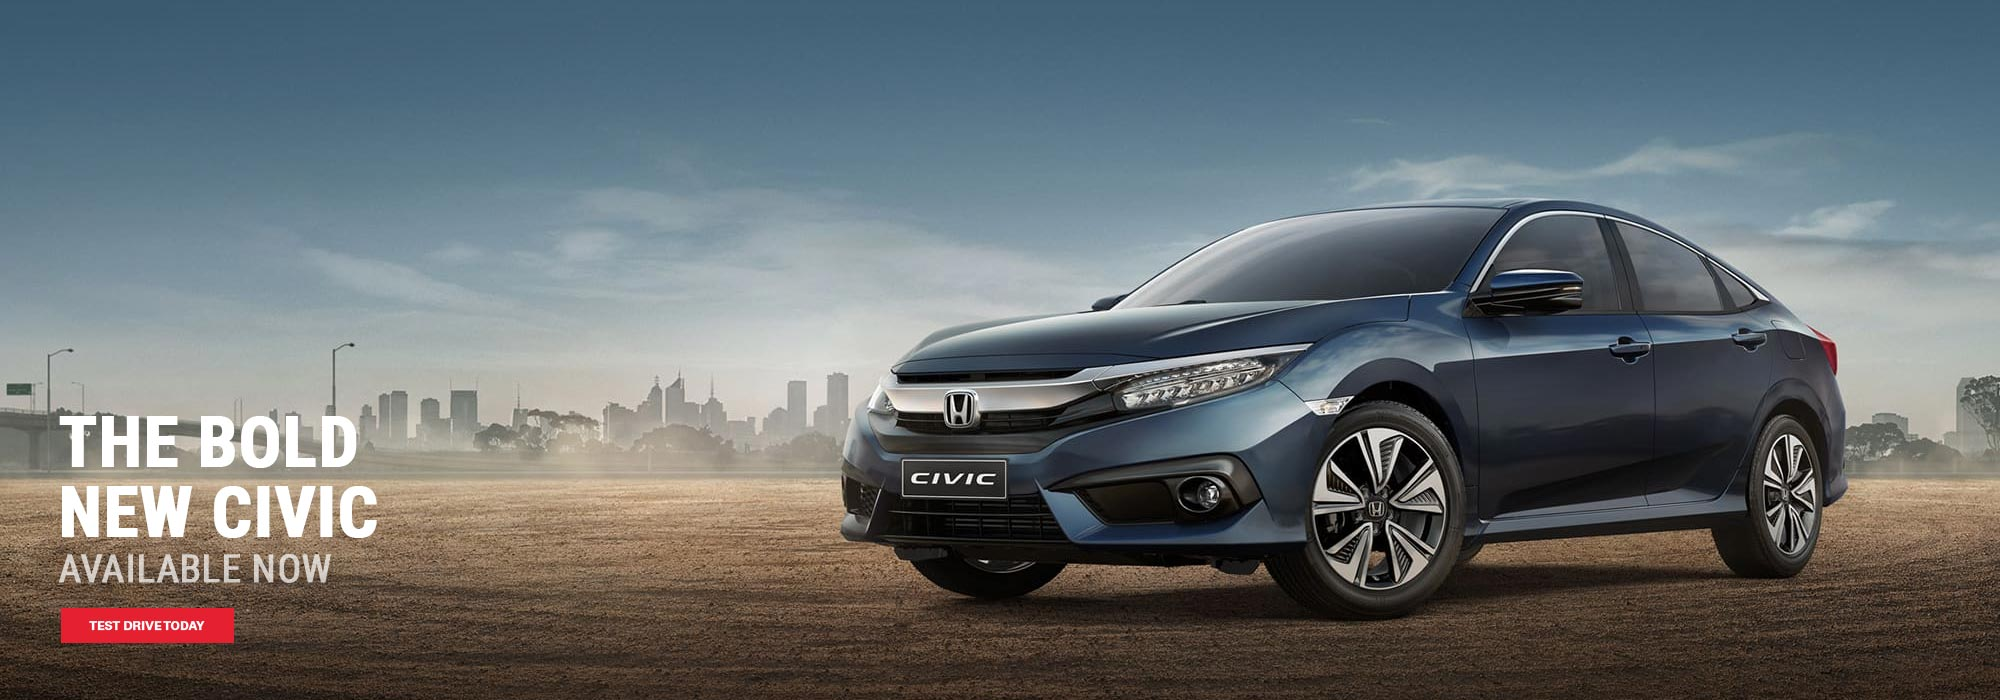 Civic Sedan Collins Honda Sydney Jazz Rs